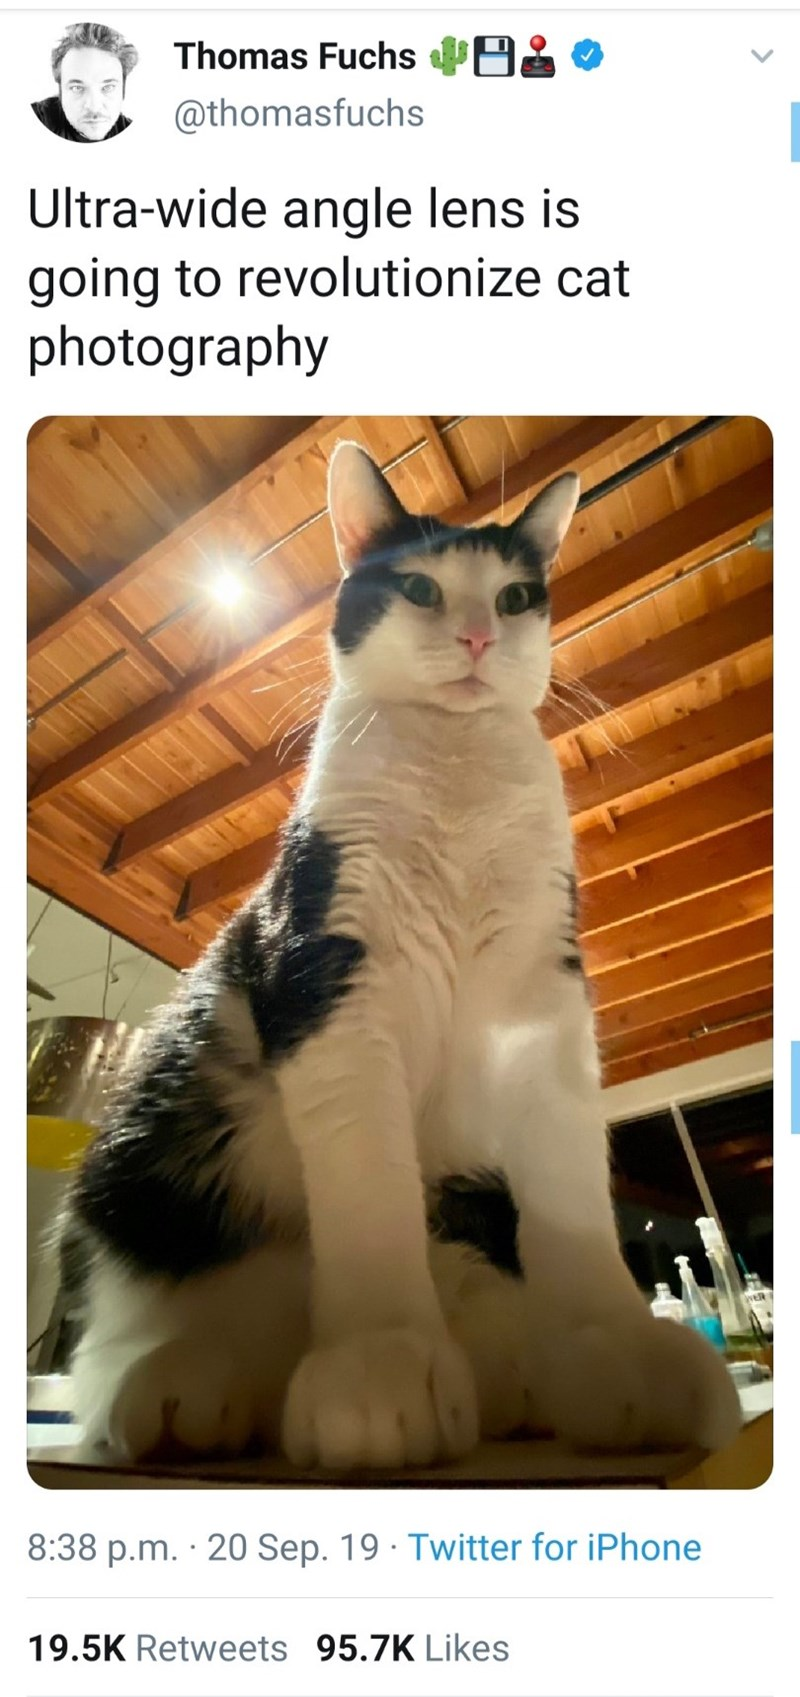 Cat - Thomas Fuchs @thomasfuchs Ultra-wide angle lens is going to revolutionize cat photography 8:38 p.m. 20 Sep. 19 Twitter for iPhone 19.5K Retweets 95.7K Likes